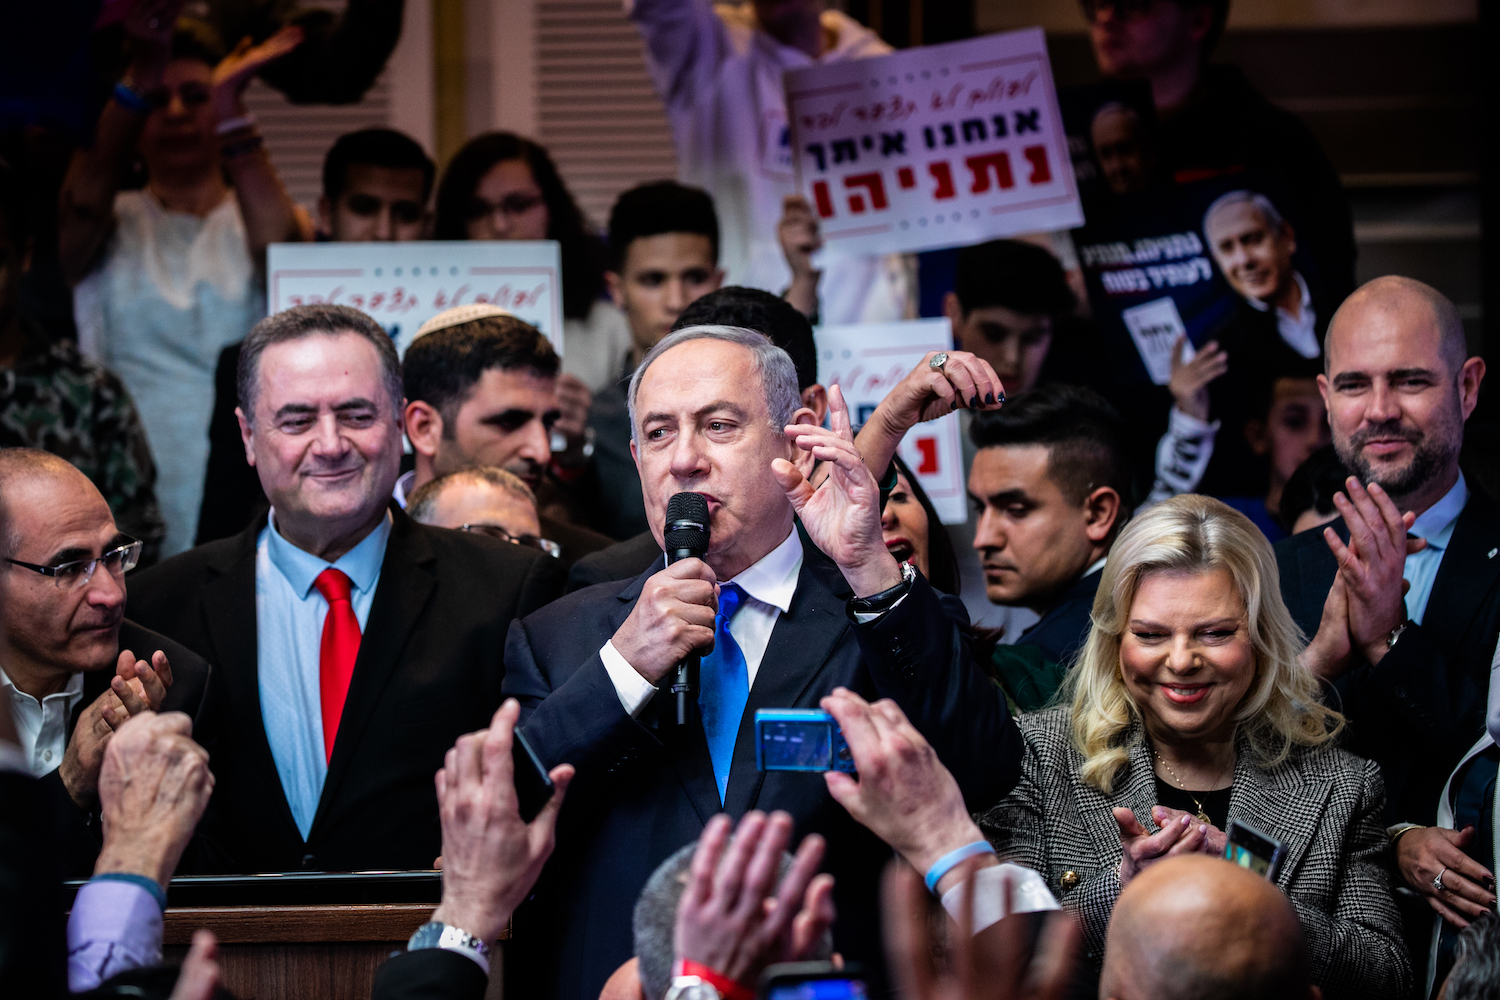 Israeli Prime Minister Benjamin Netanyahu at a Likud Party election rally in Jerusalem, on February 26, 2020. Photo by Olivier Fitoussi/Flash90